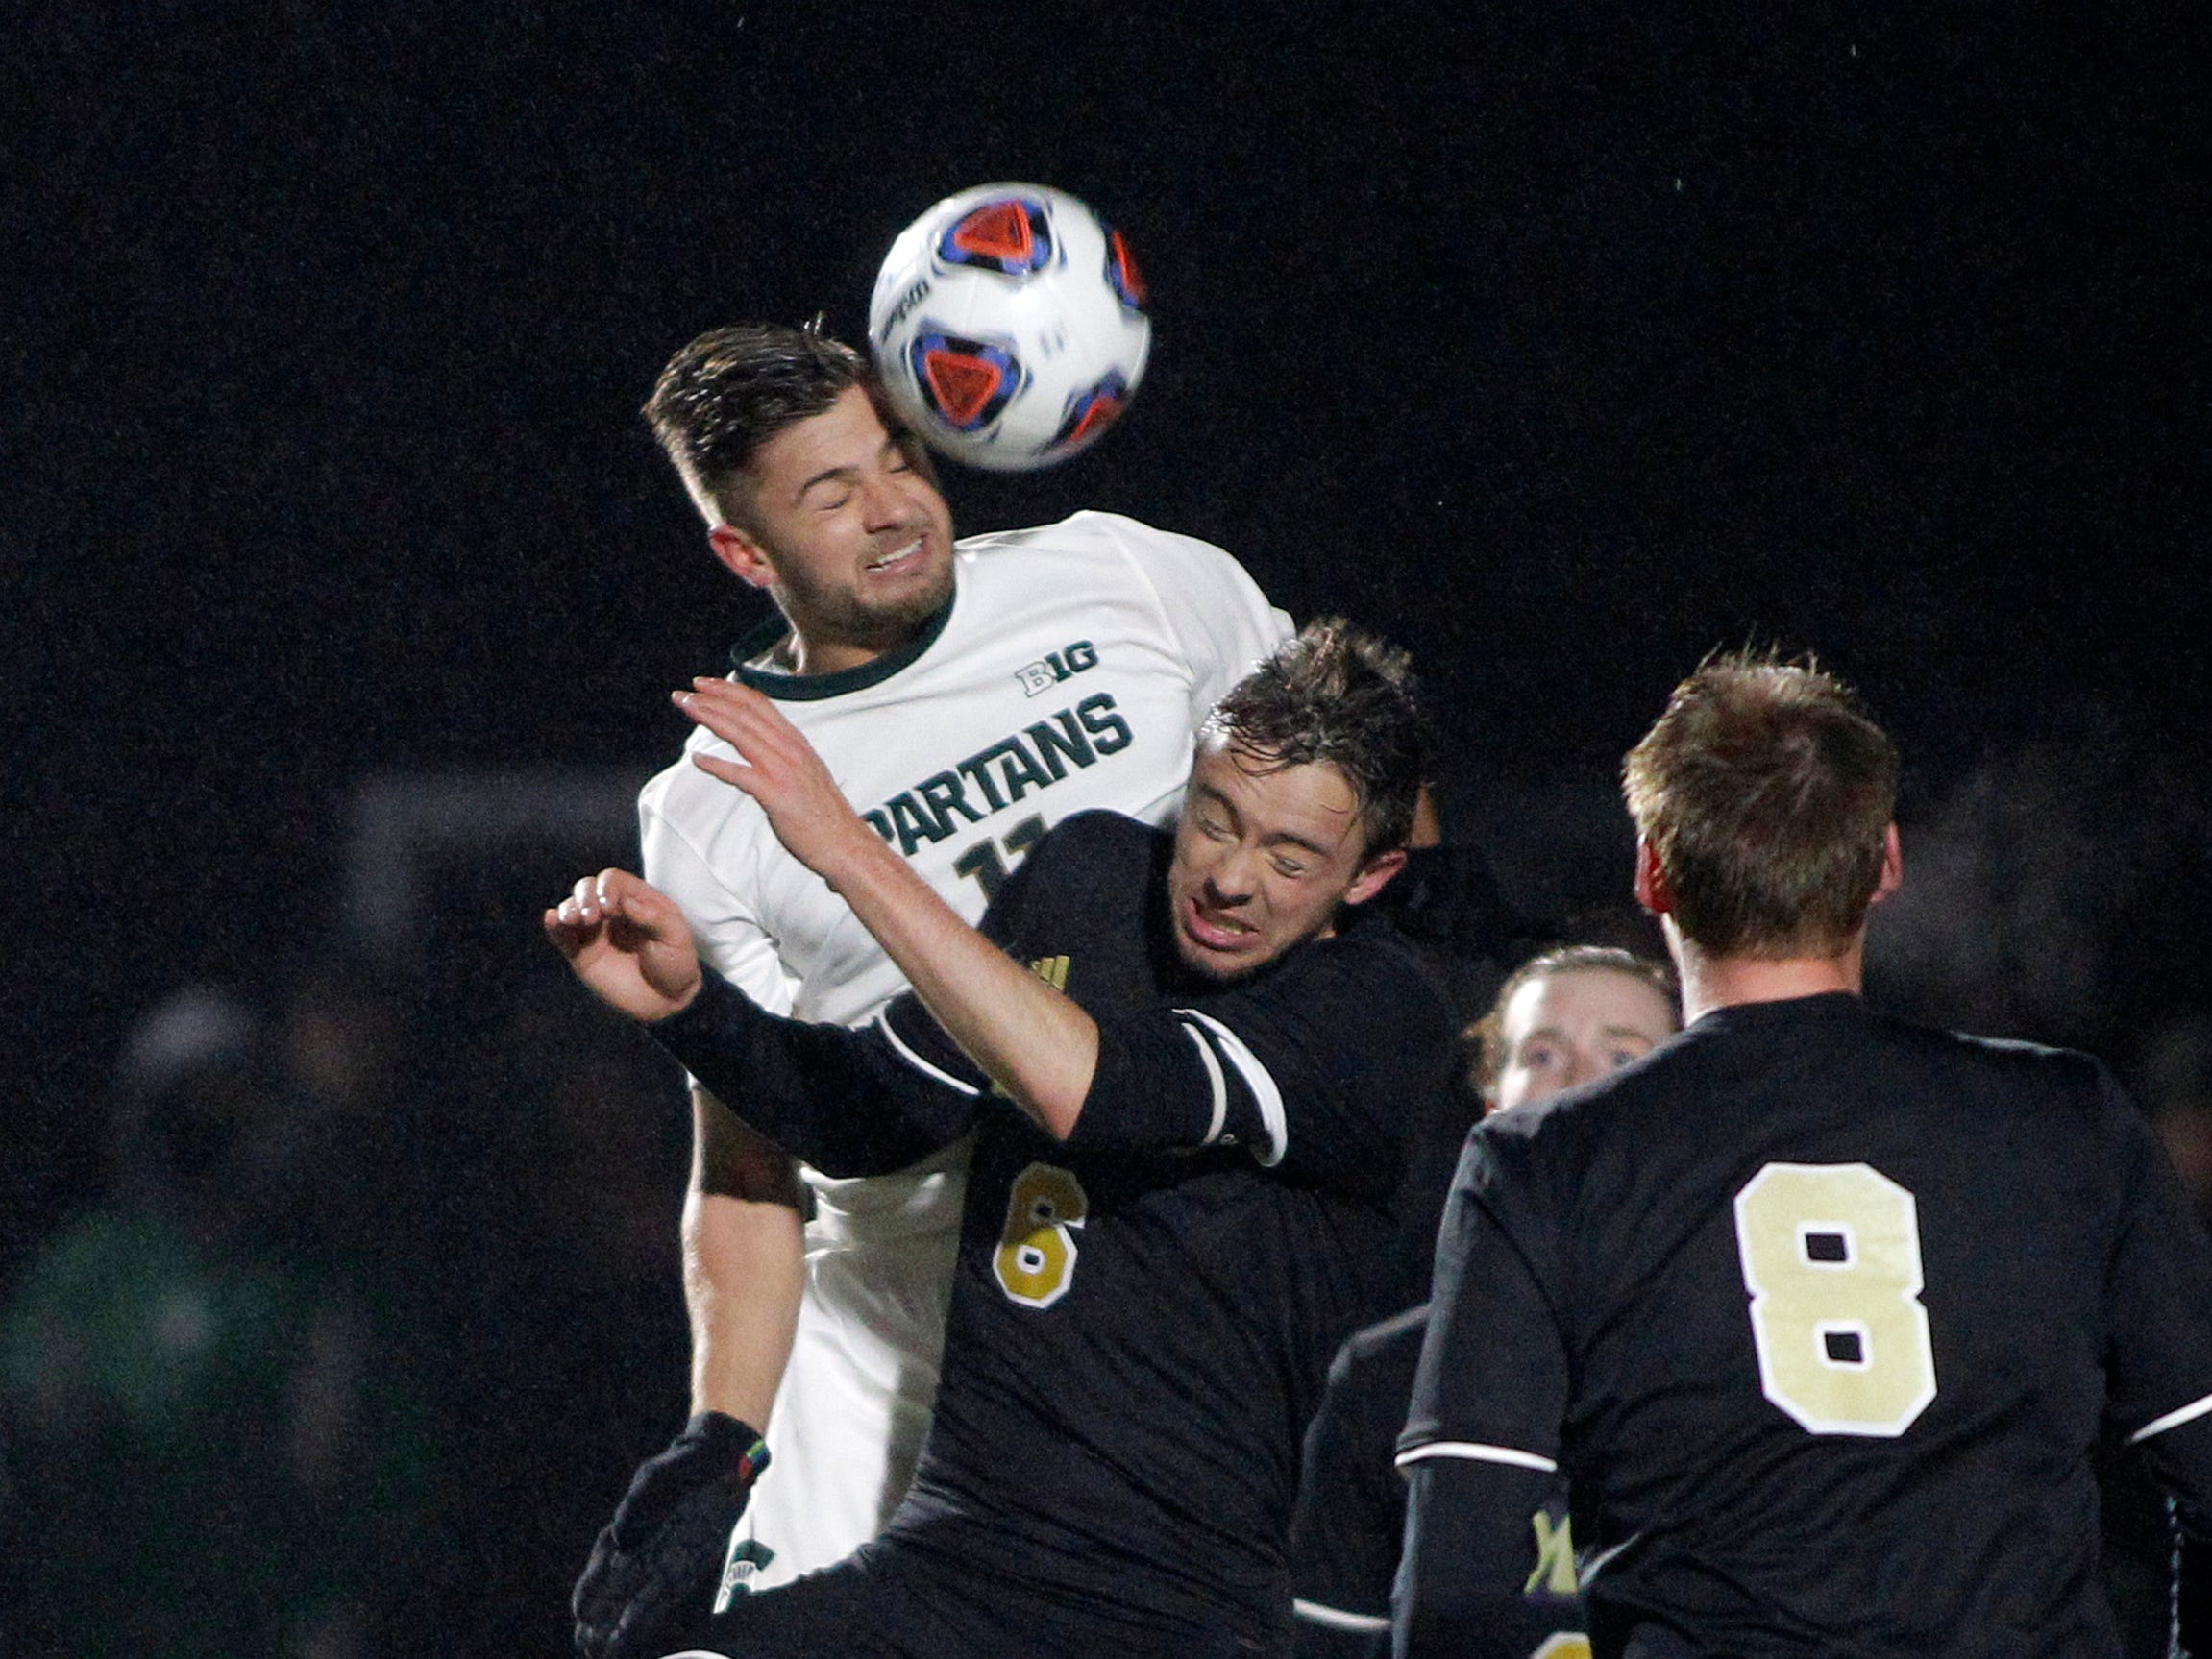 Michigan State's Ryan Sierakowski, left, and James Madison's Thomas Shores (6) battle for a header, Saturday, Dec. 1, 2018, in East Lansing, Mich. Michigan State won 2-1.